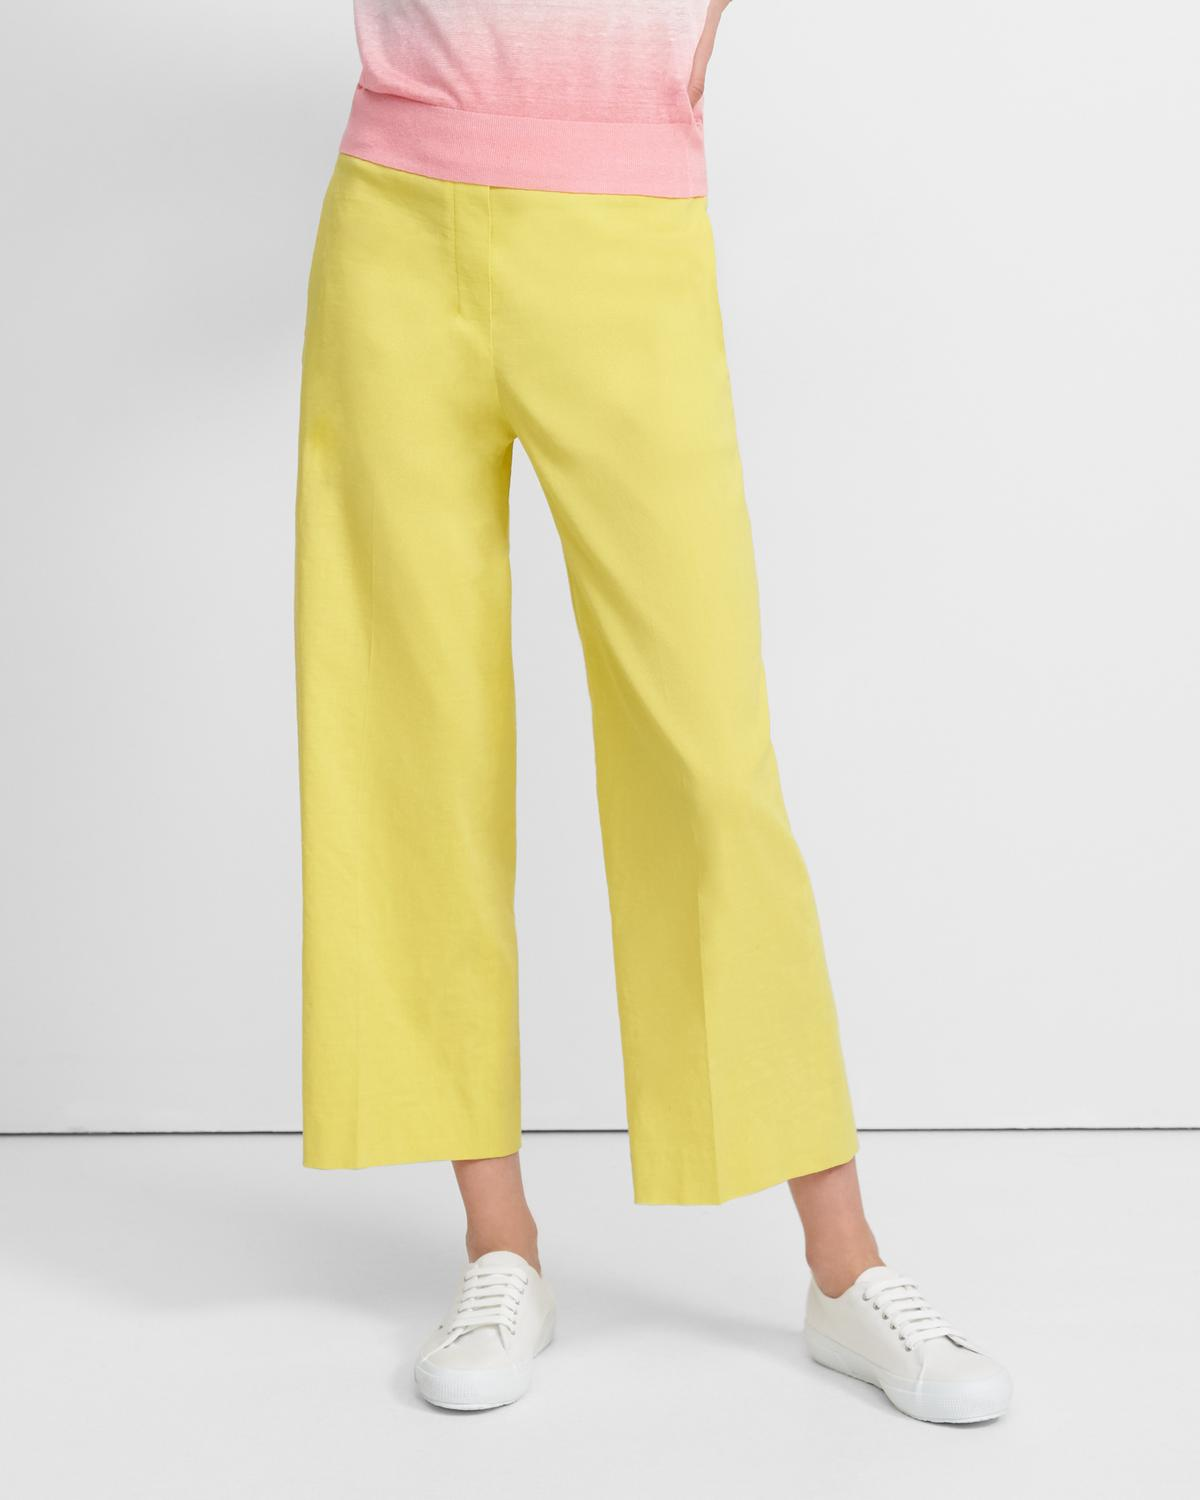 Cropped Pull-On Pant in Good Linen